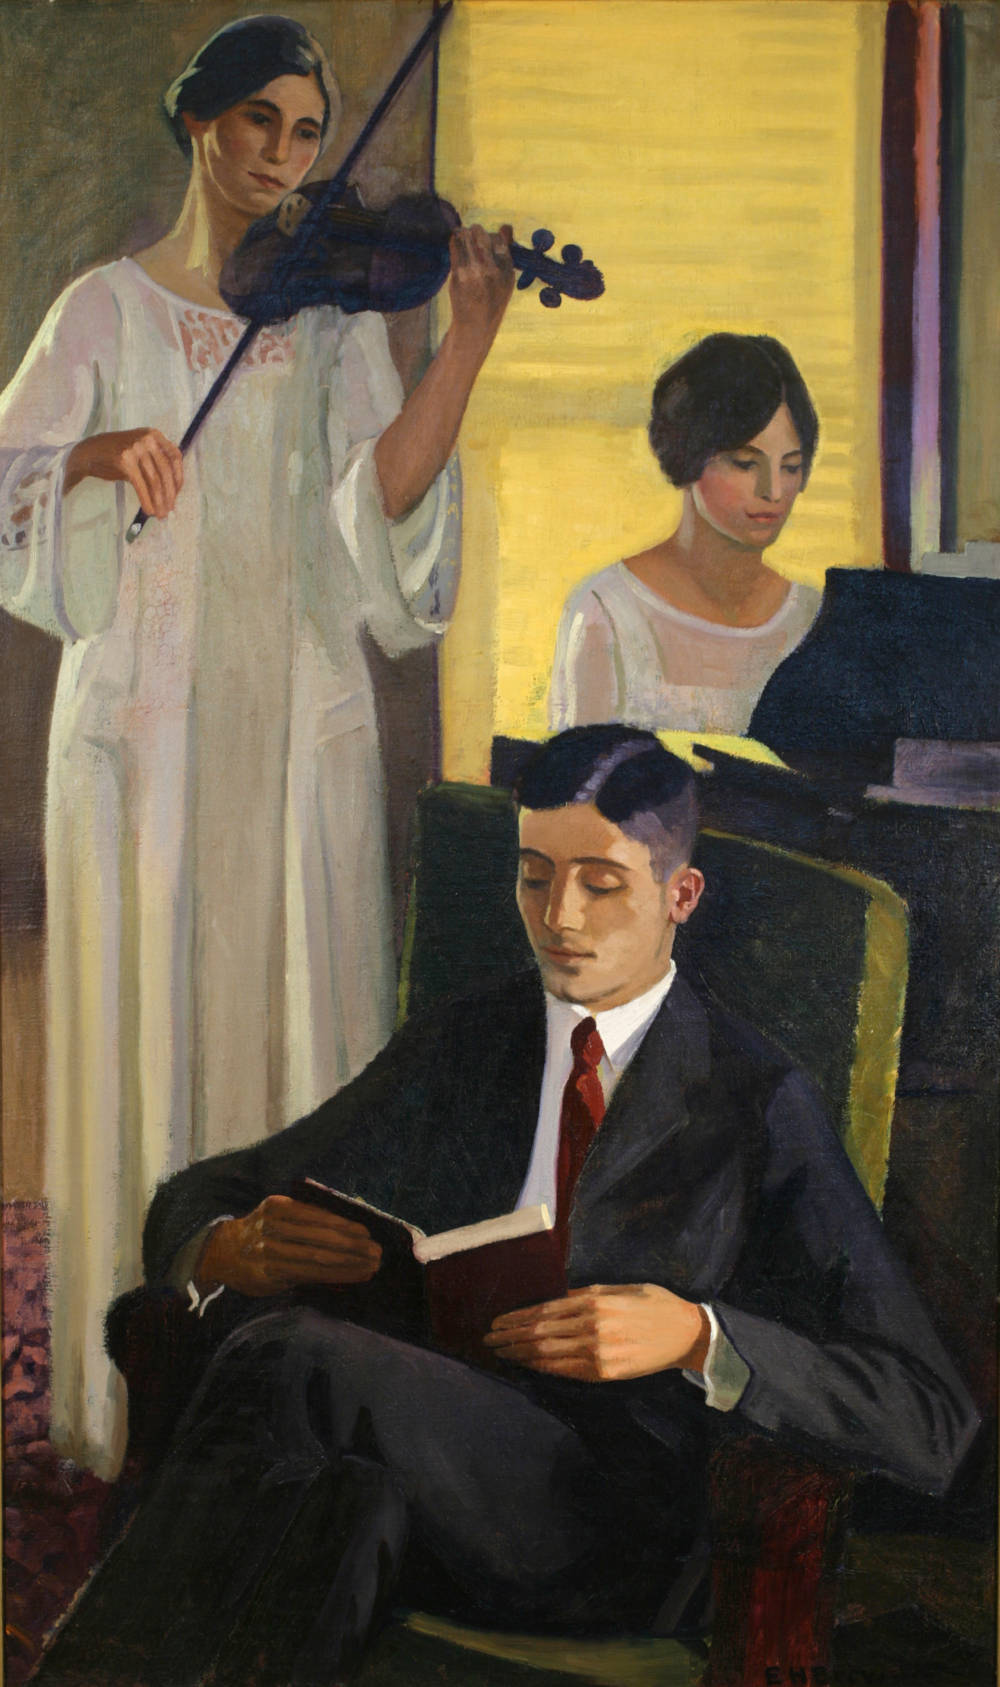 Woman with Violin, Man Reading & Woman Playing Piano